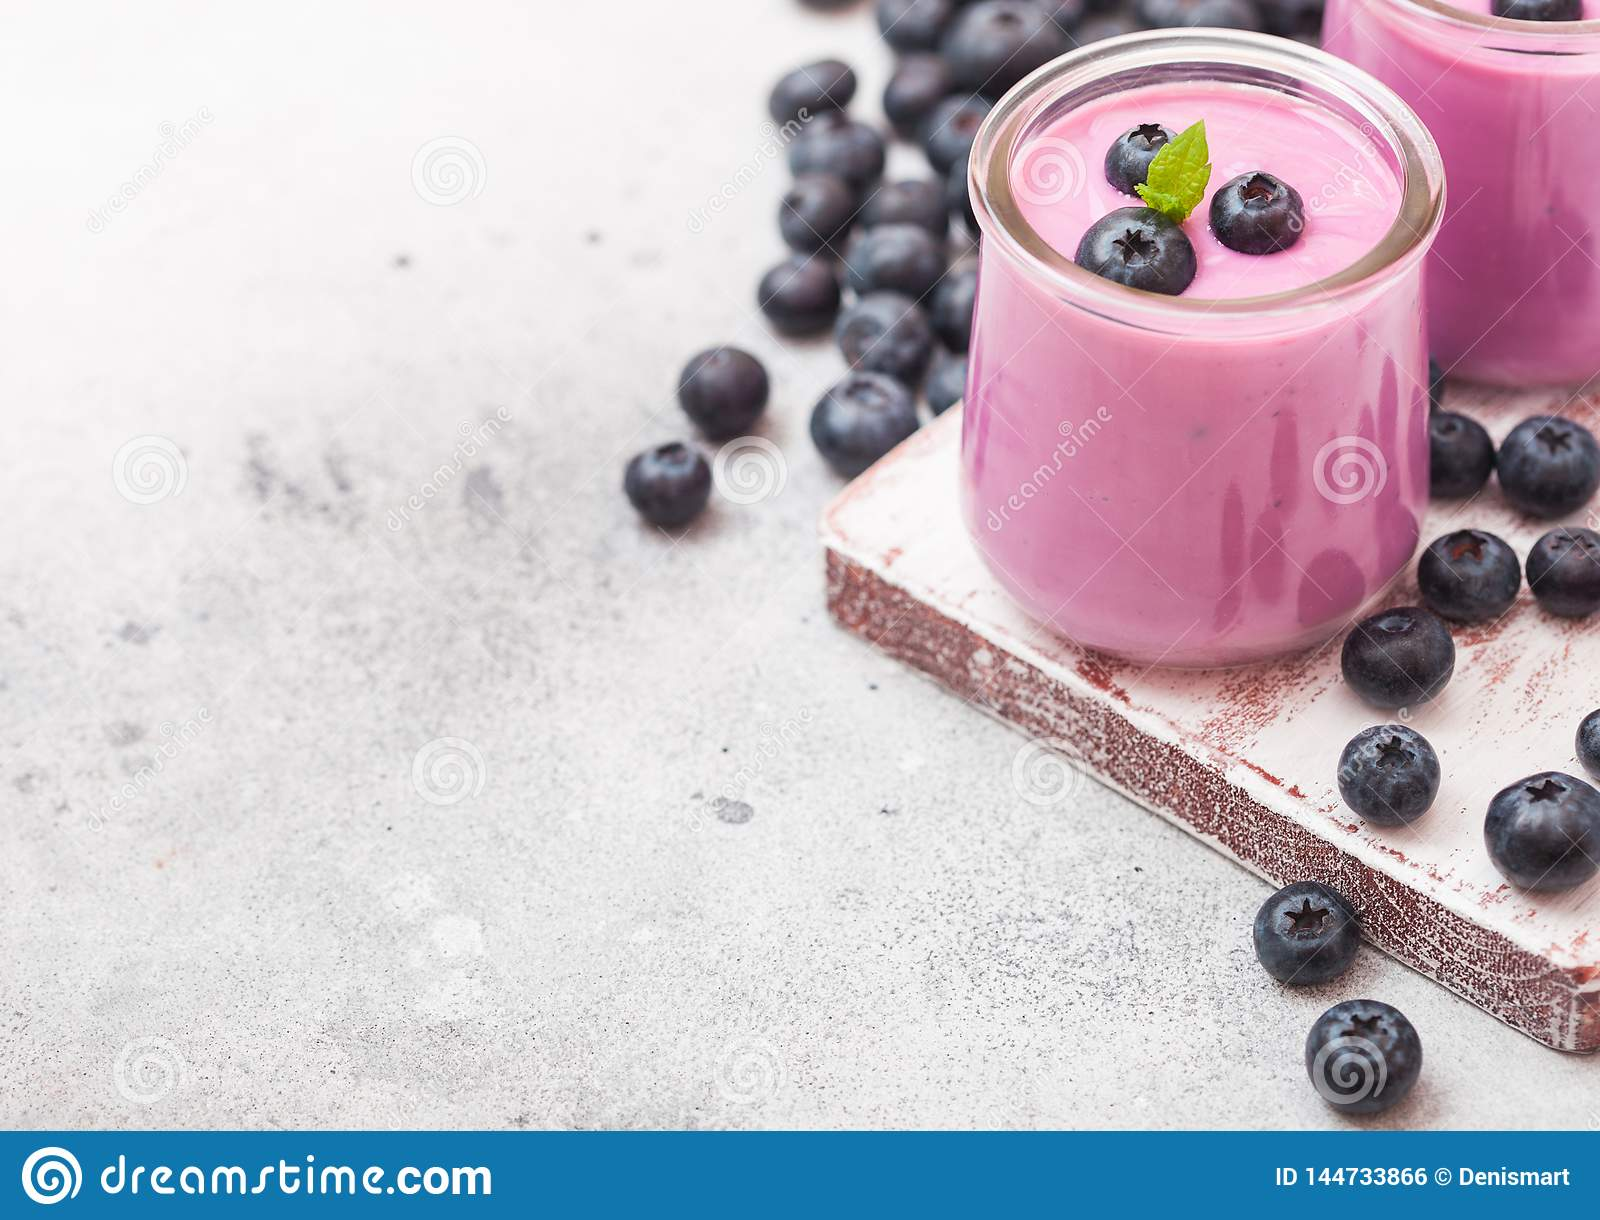 Fresh hommemade creamy blueberry yoghurt with fresh blueberries on vintage wooden board on stone kitchen table background